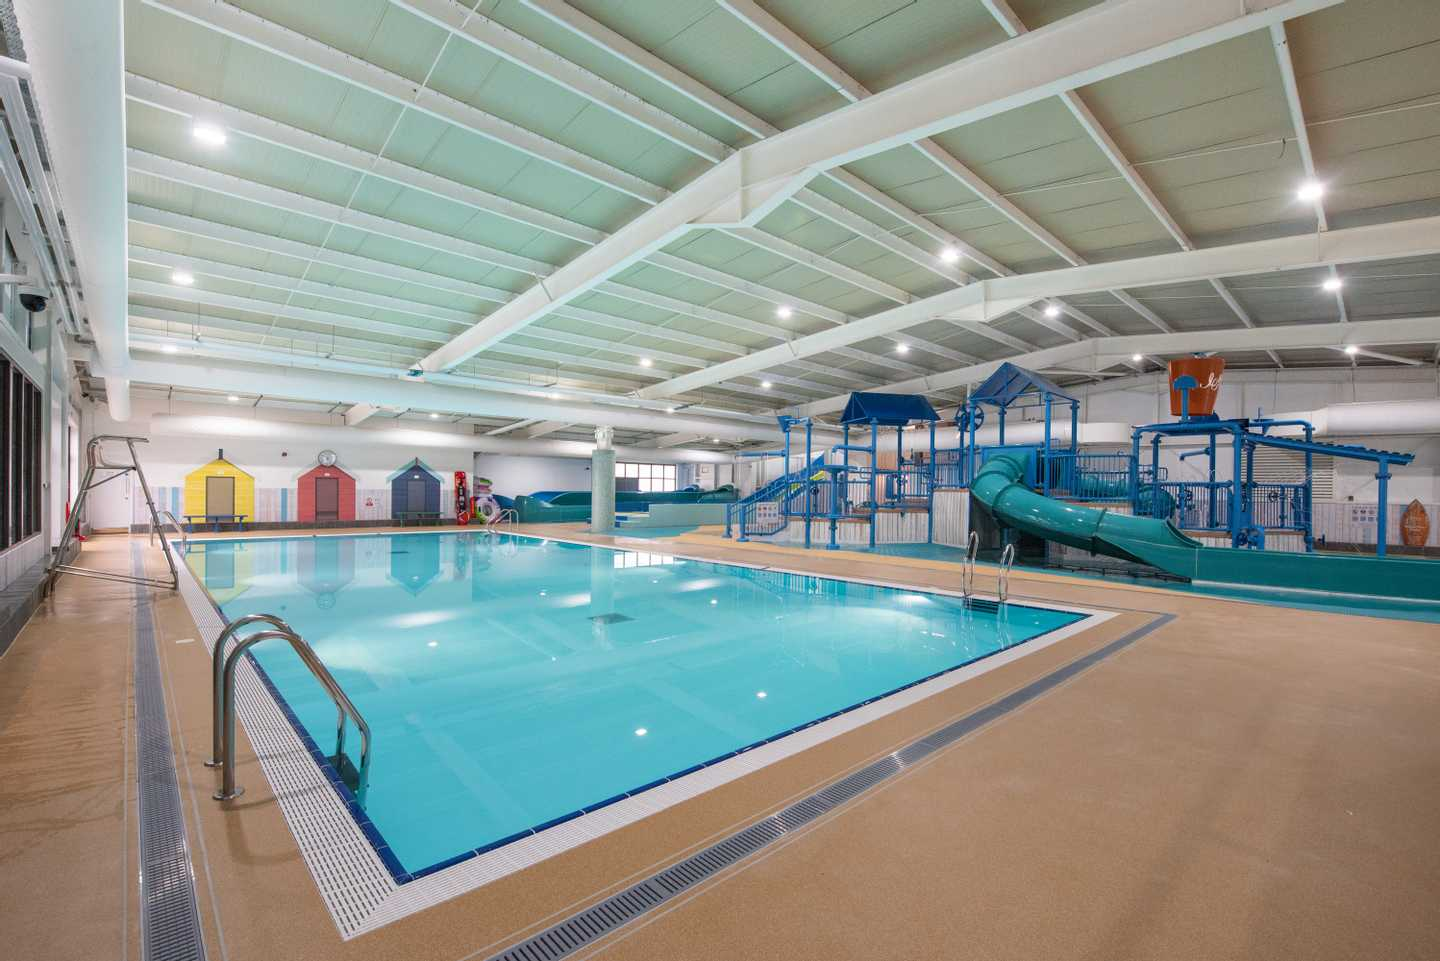 The Shore Water Park indoor pool